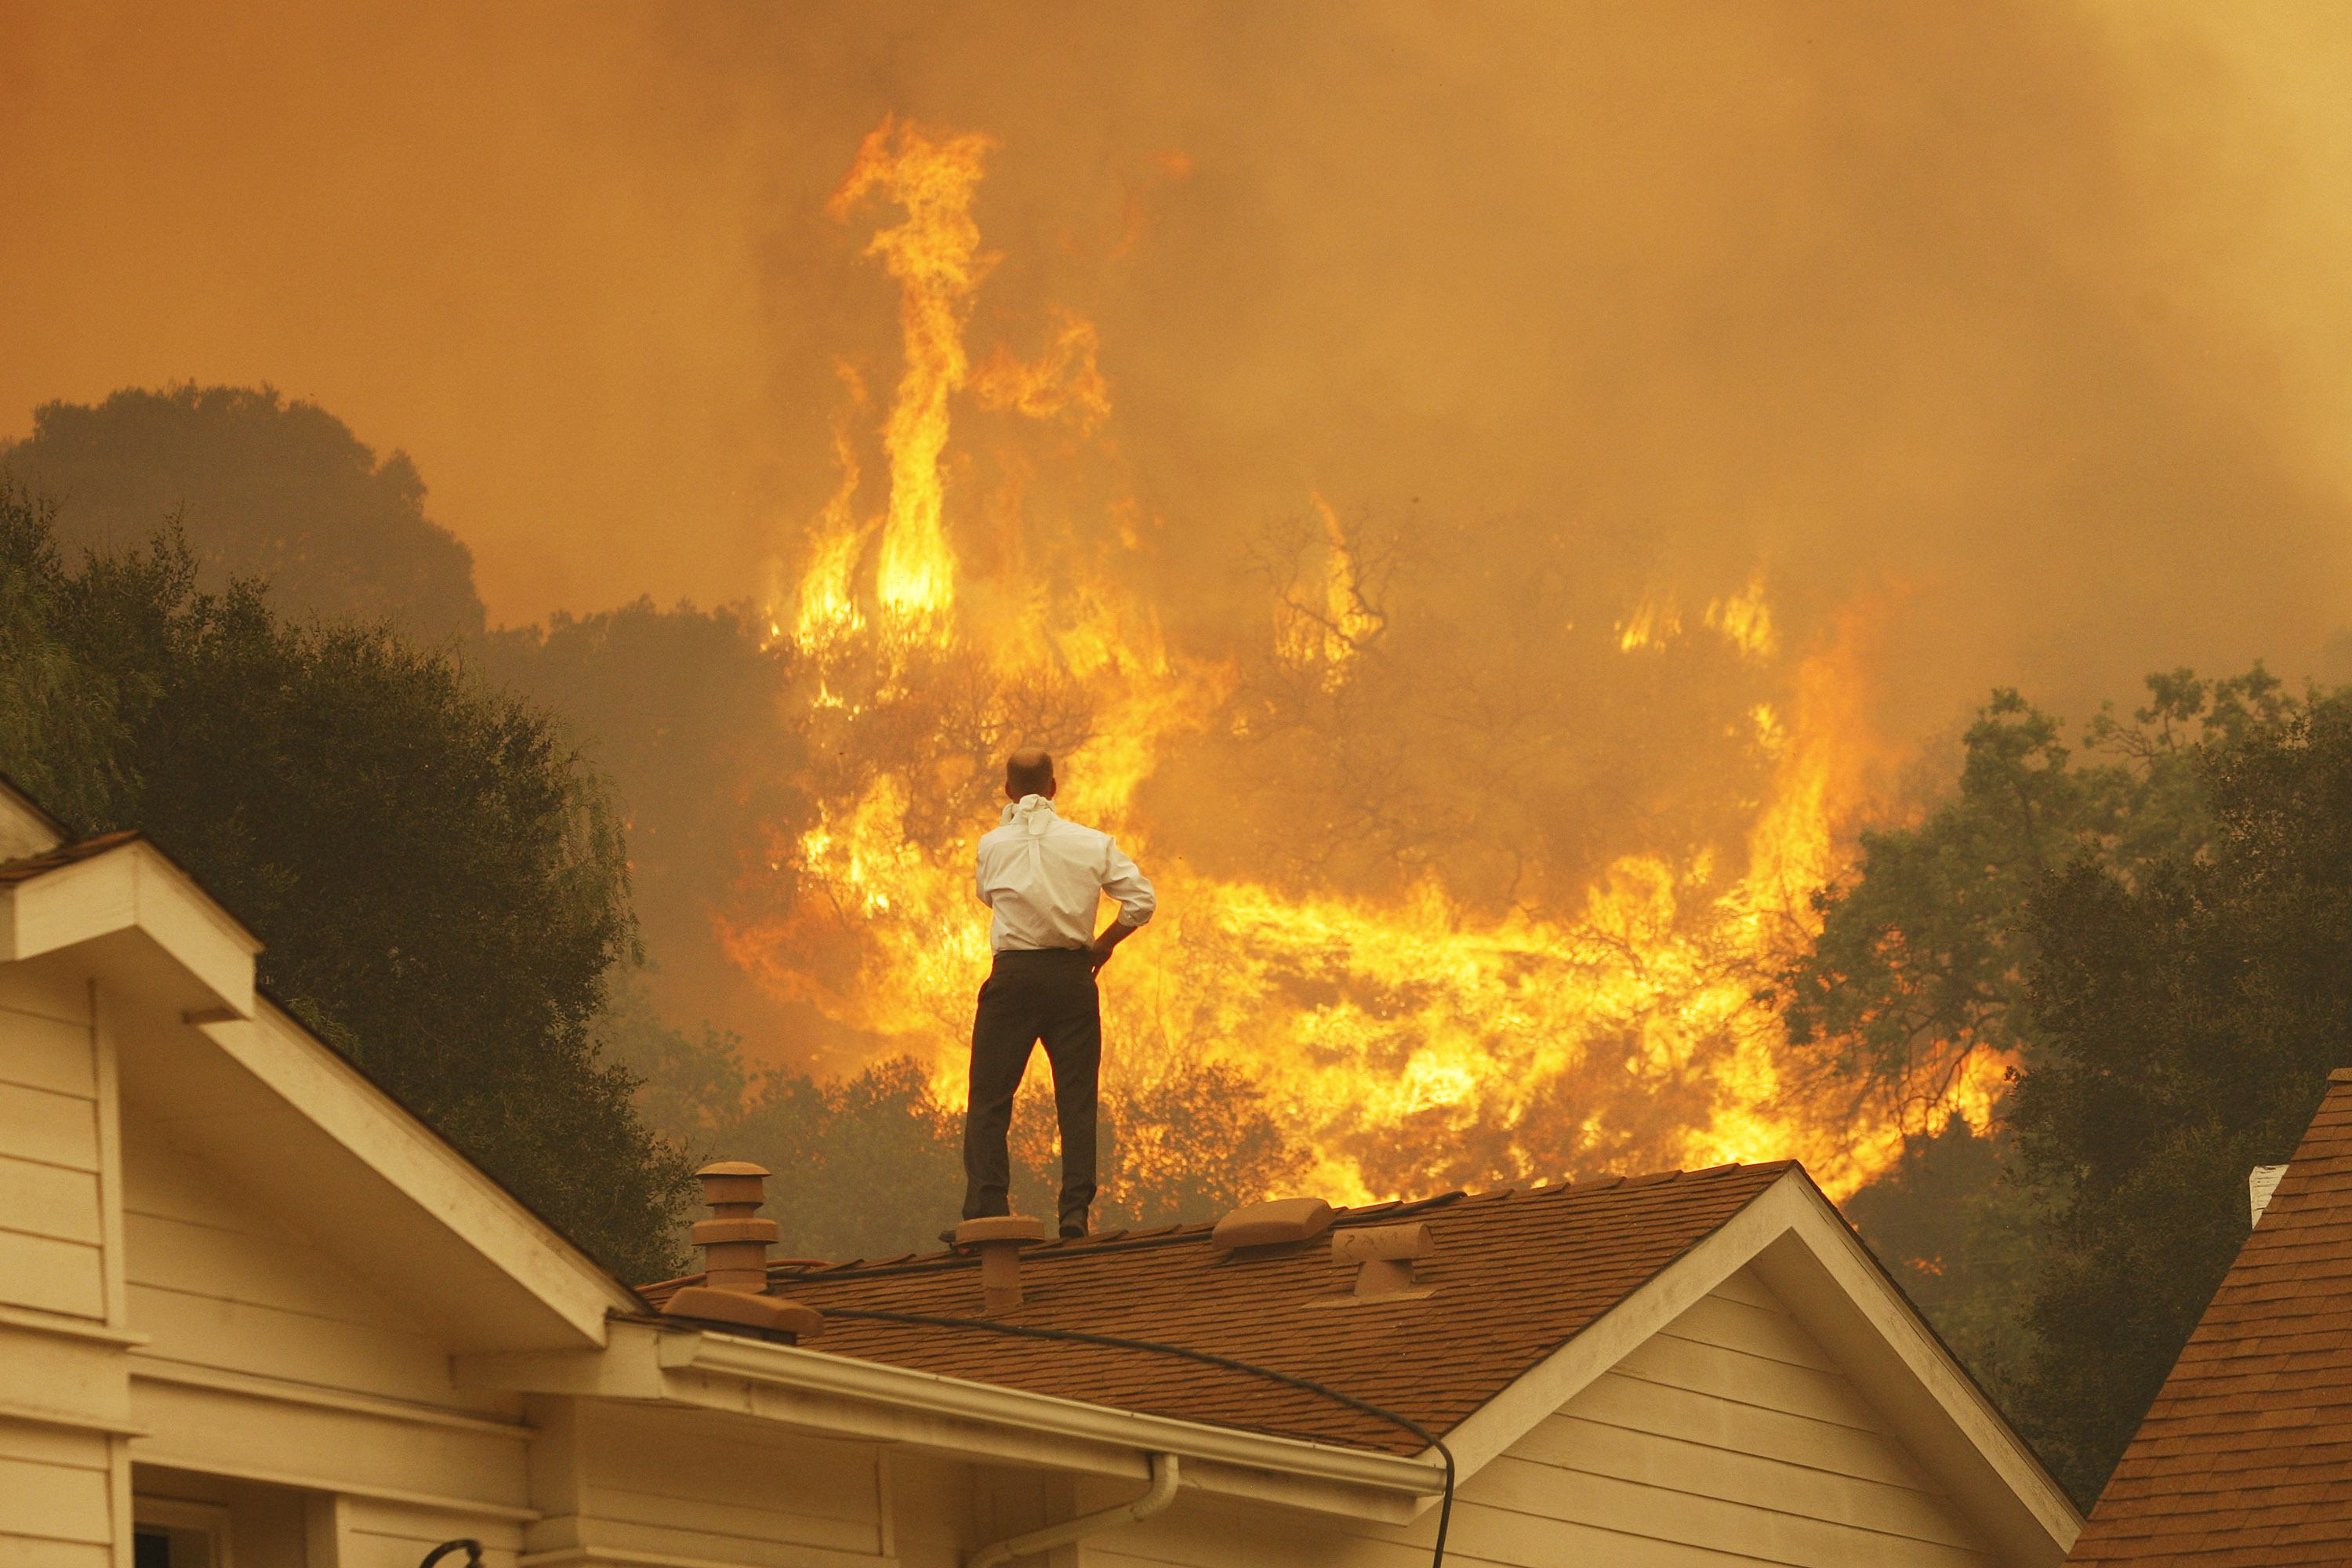 A man on a rooftop looks at an approaching wildfire, possibly linked to climate change